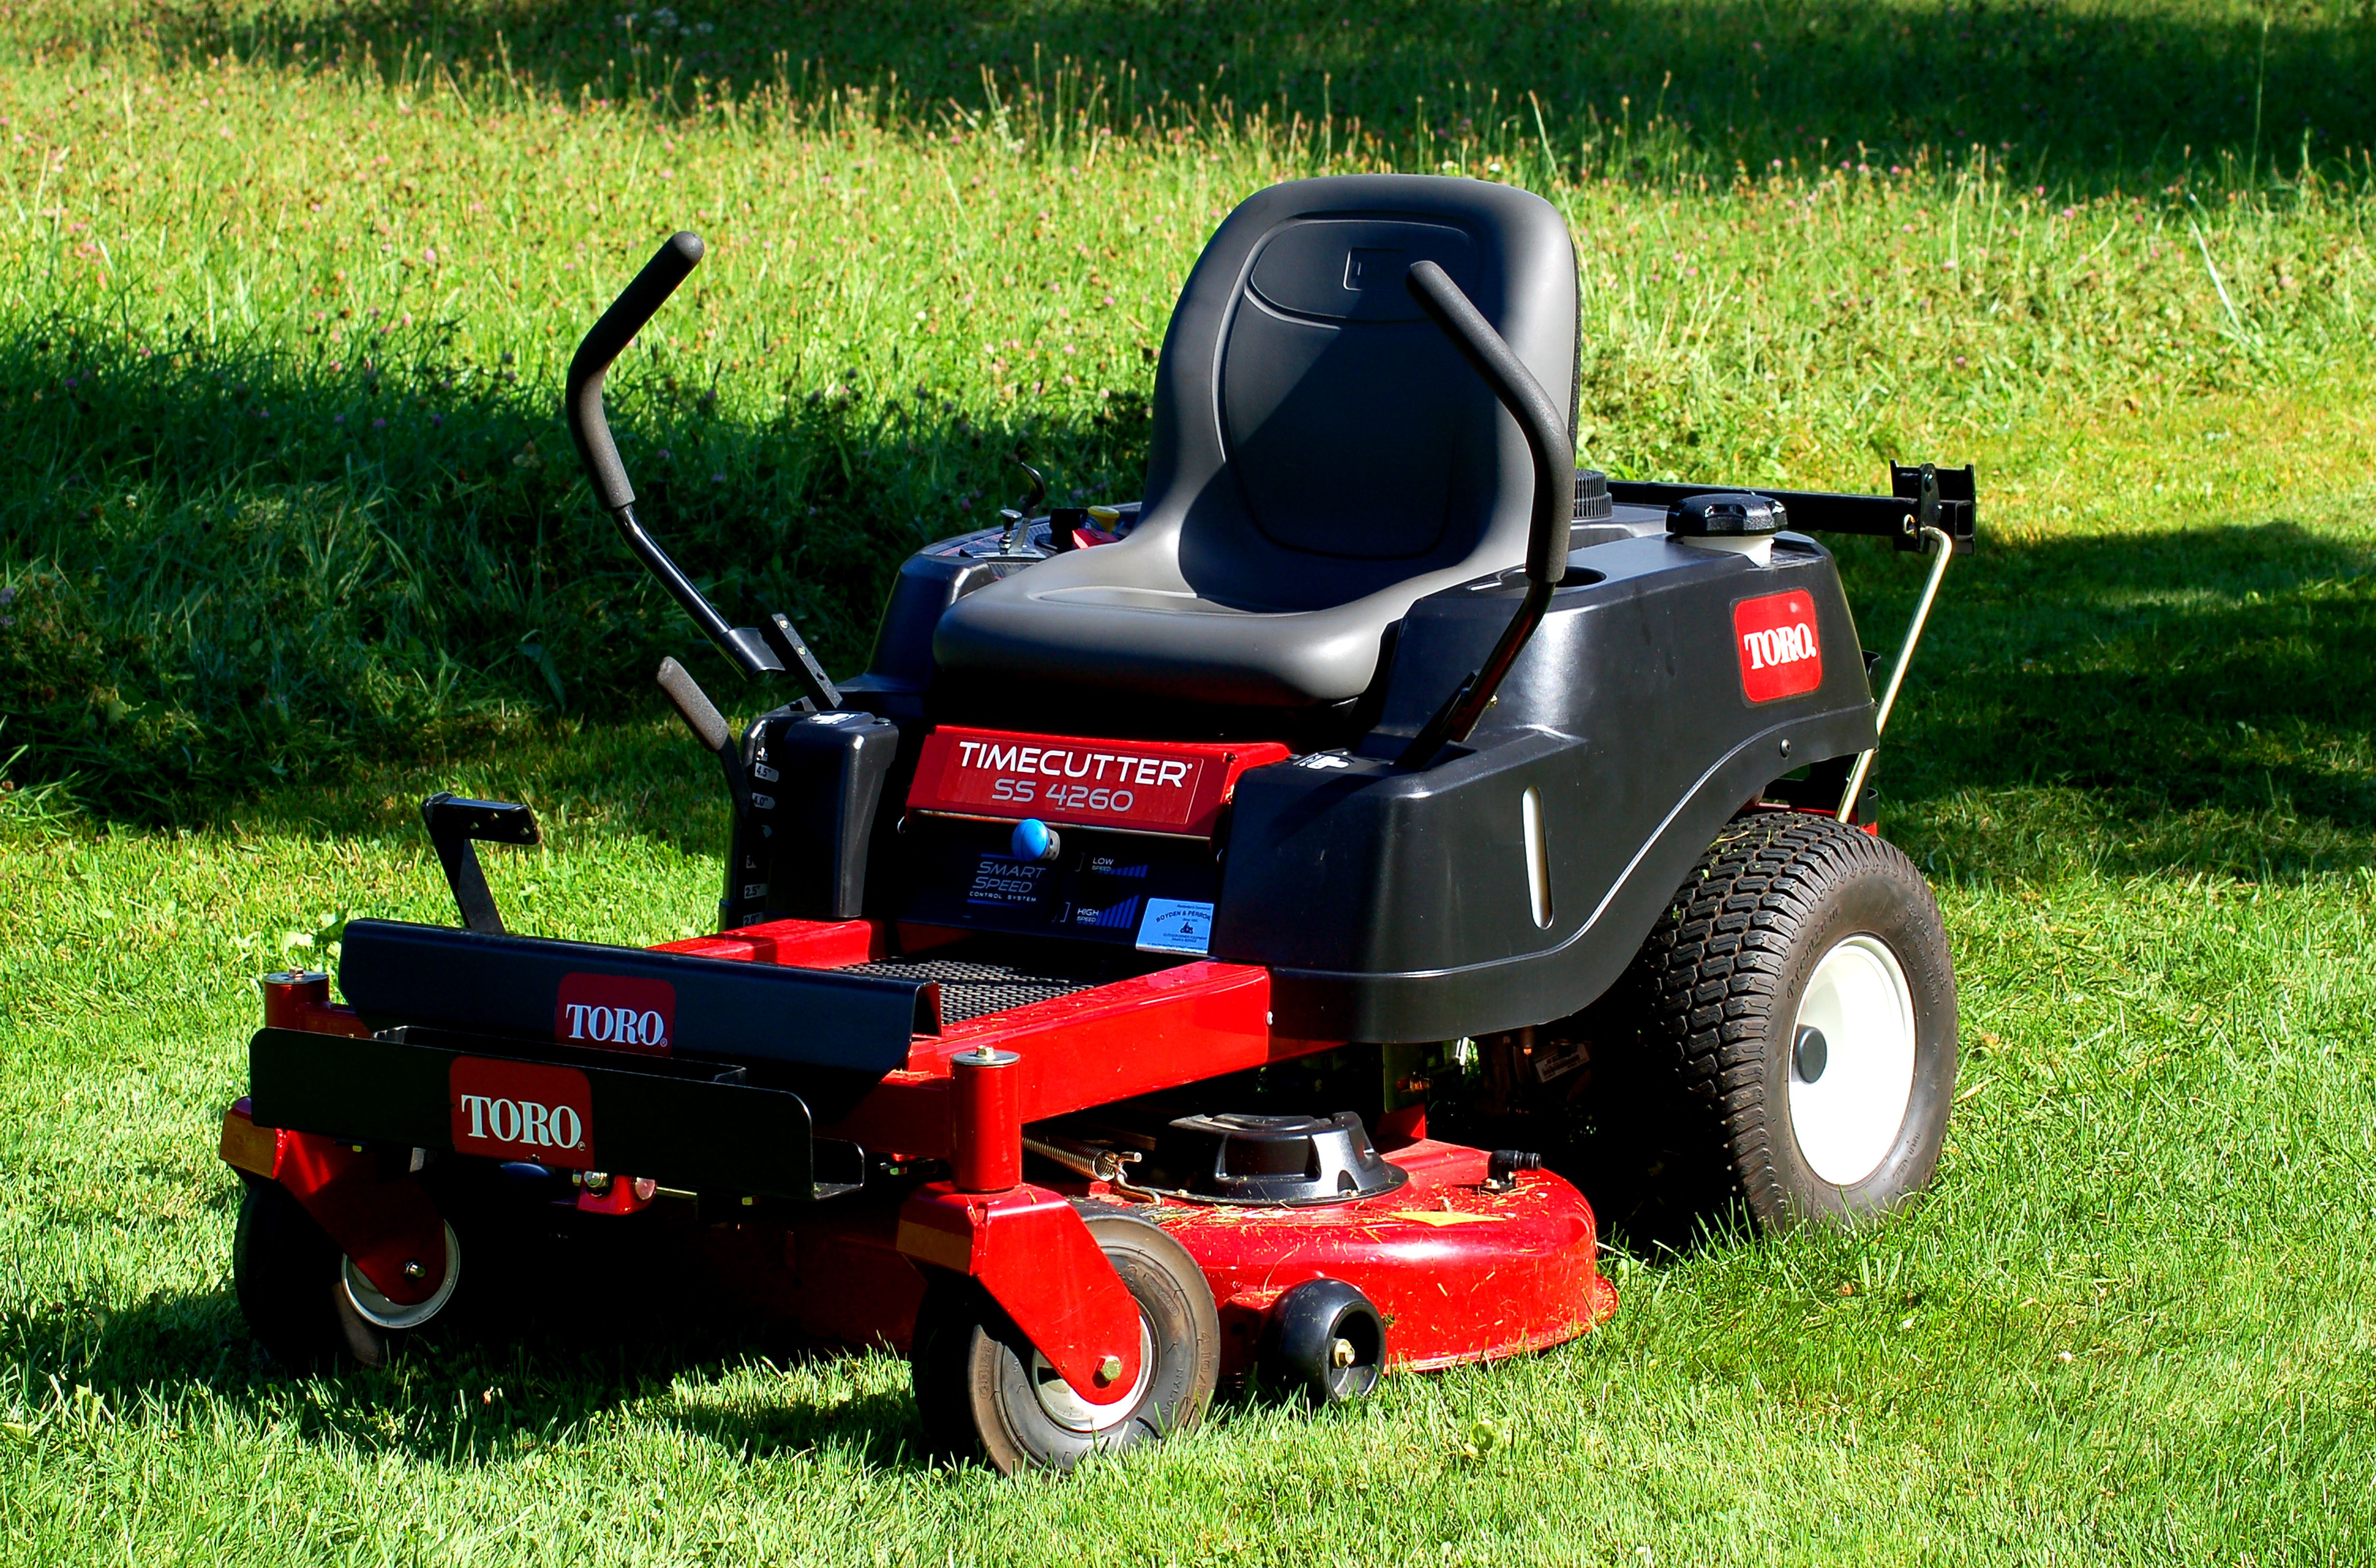 Lawn Mower Riding Mowers Vs Lawn Tractors What 39s The Difference